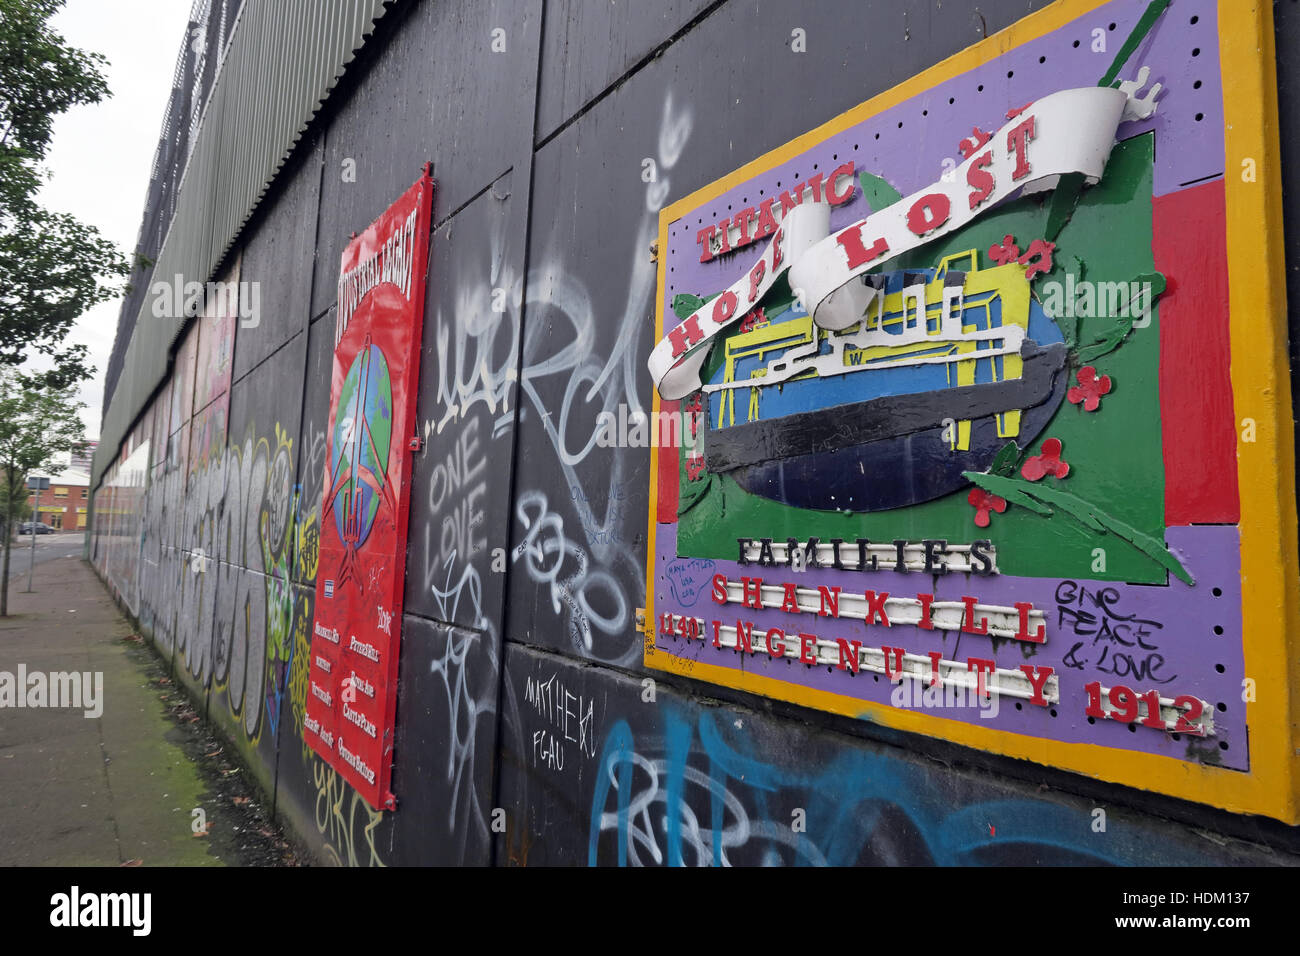 Titanic Hope Lost - Belfast International Peace Wall,Cupar way,West Belfast,NI,UK - Stock Image